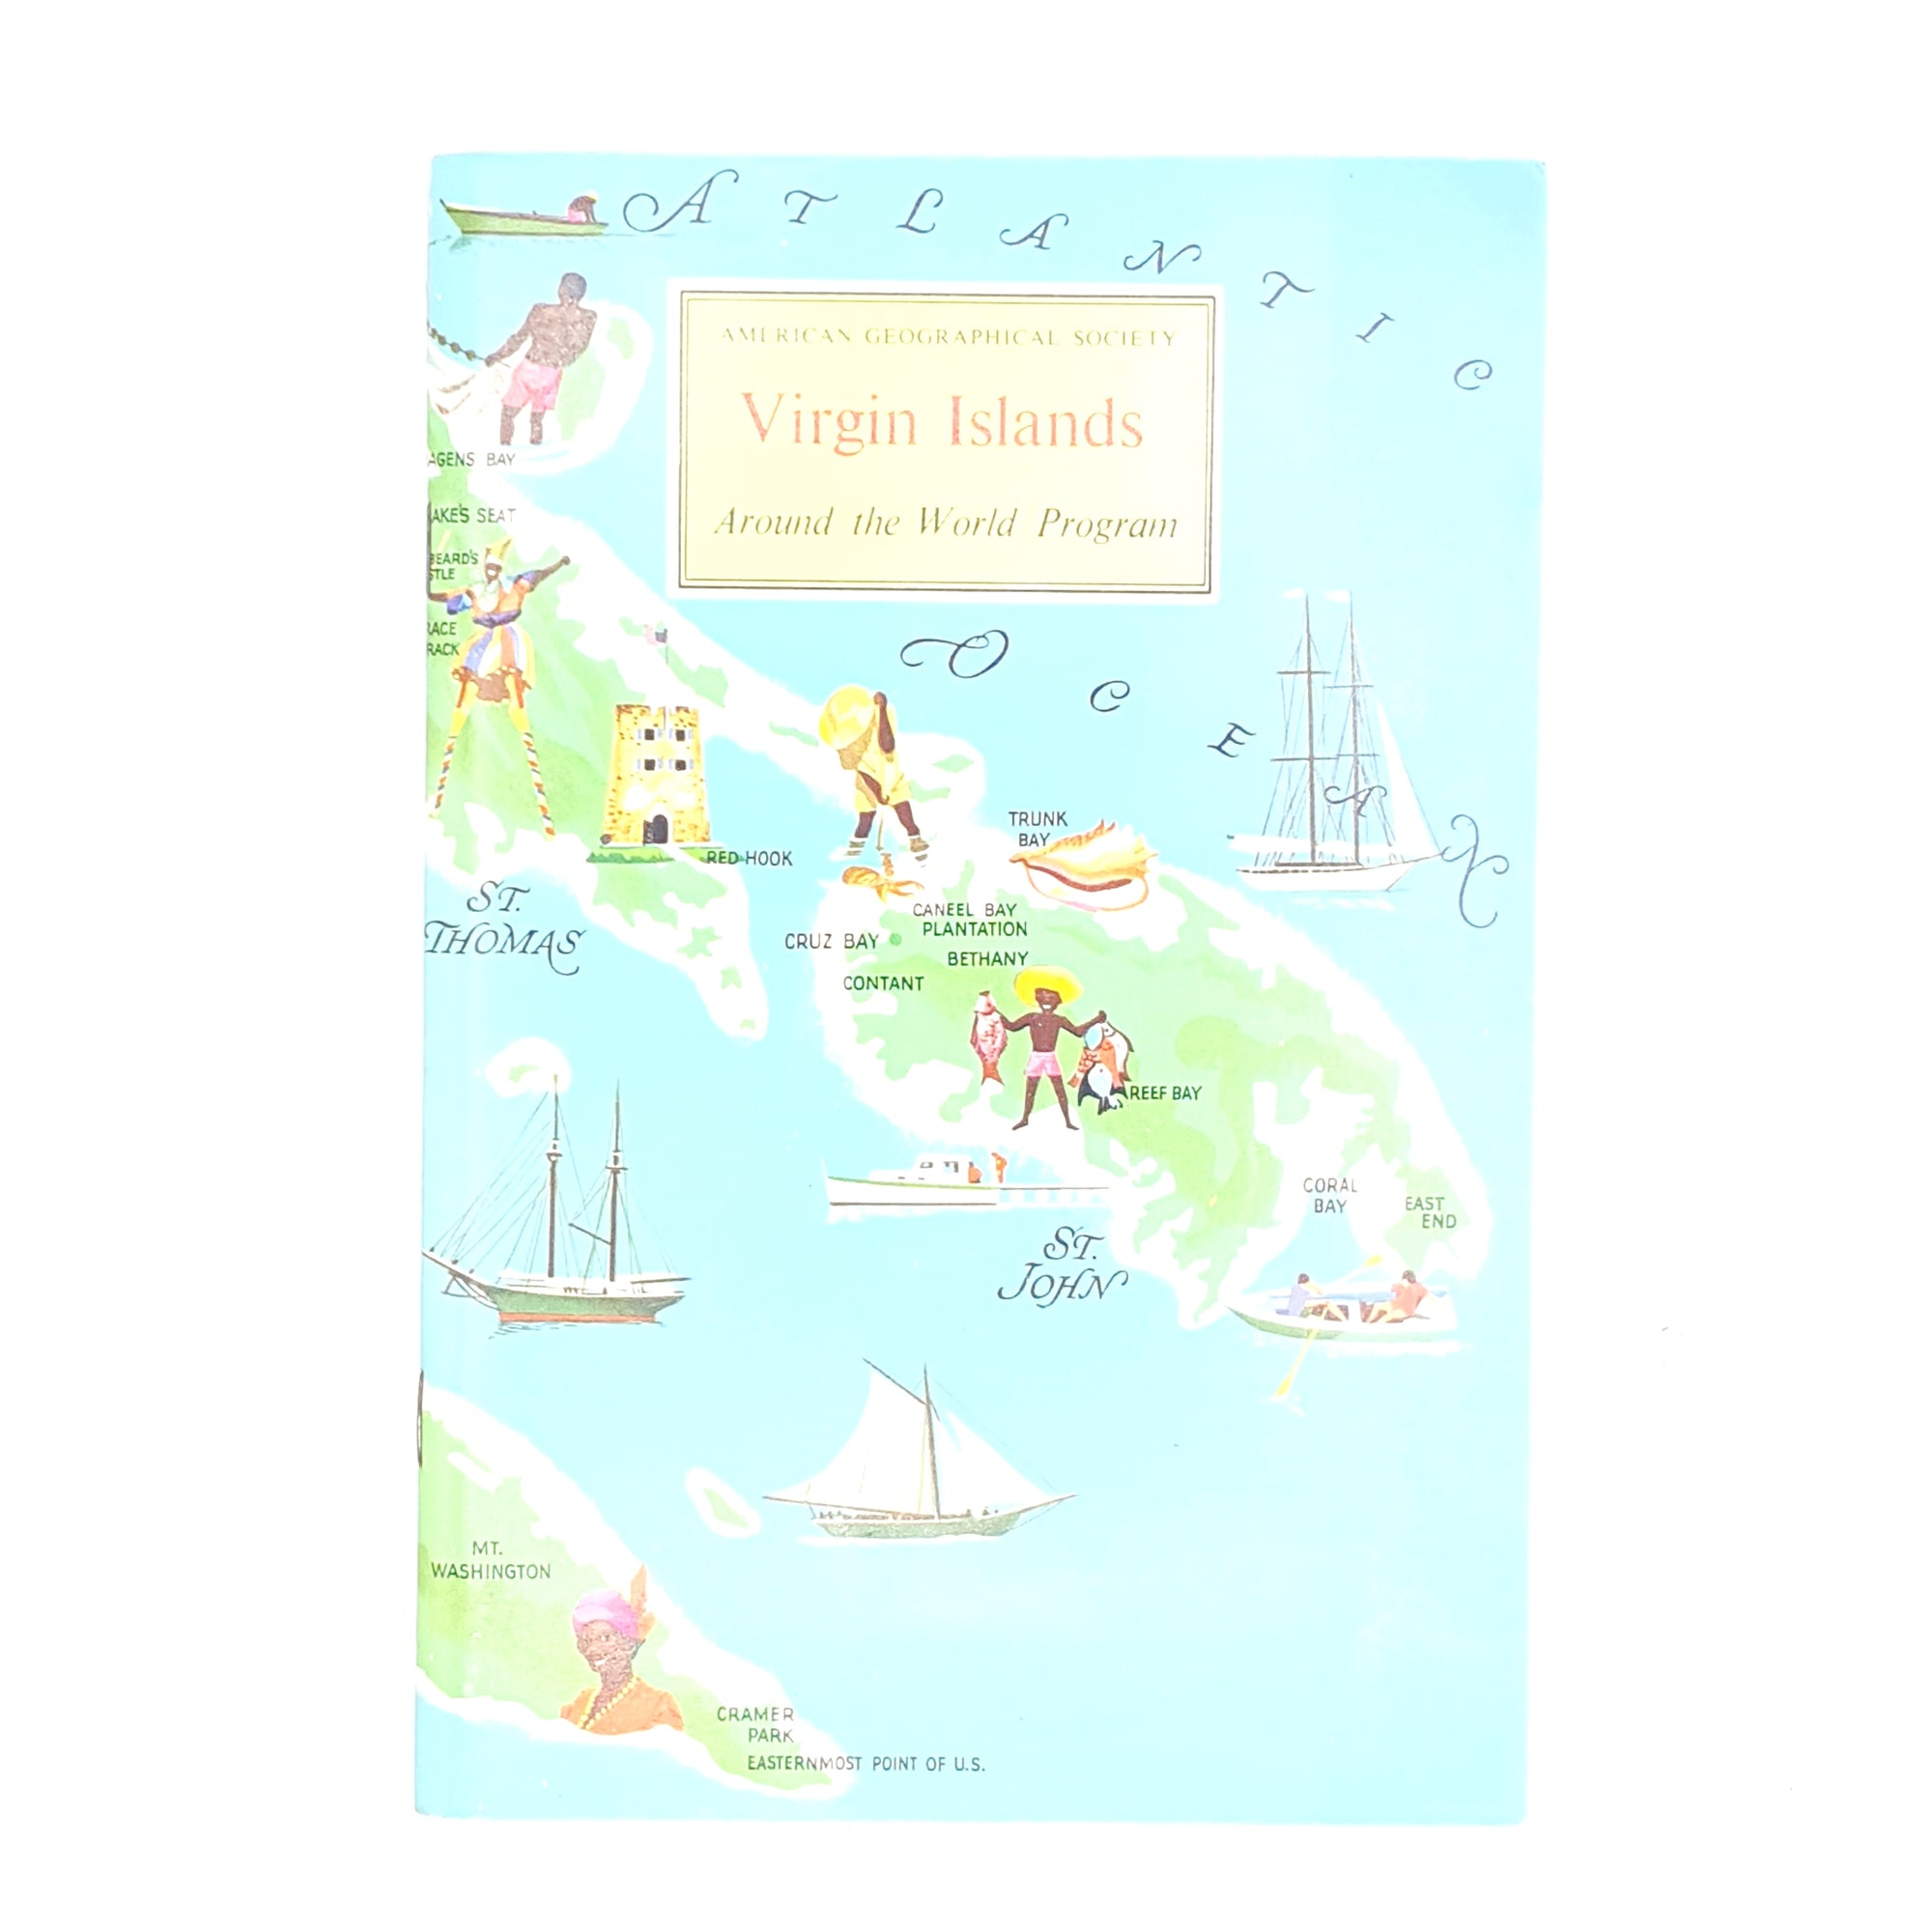 American Geographical Society Guide to The Virgin Islands 1969